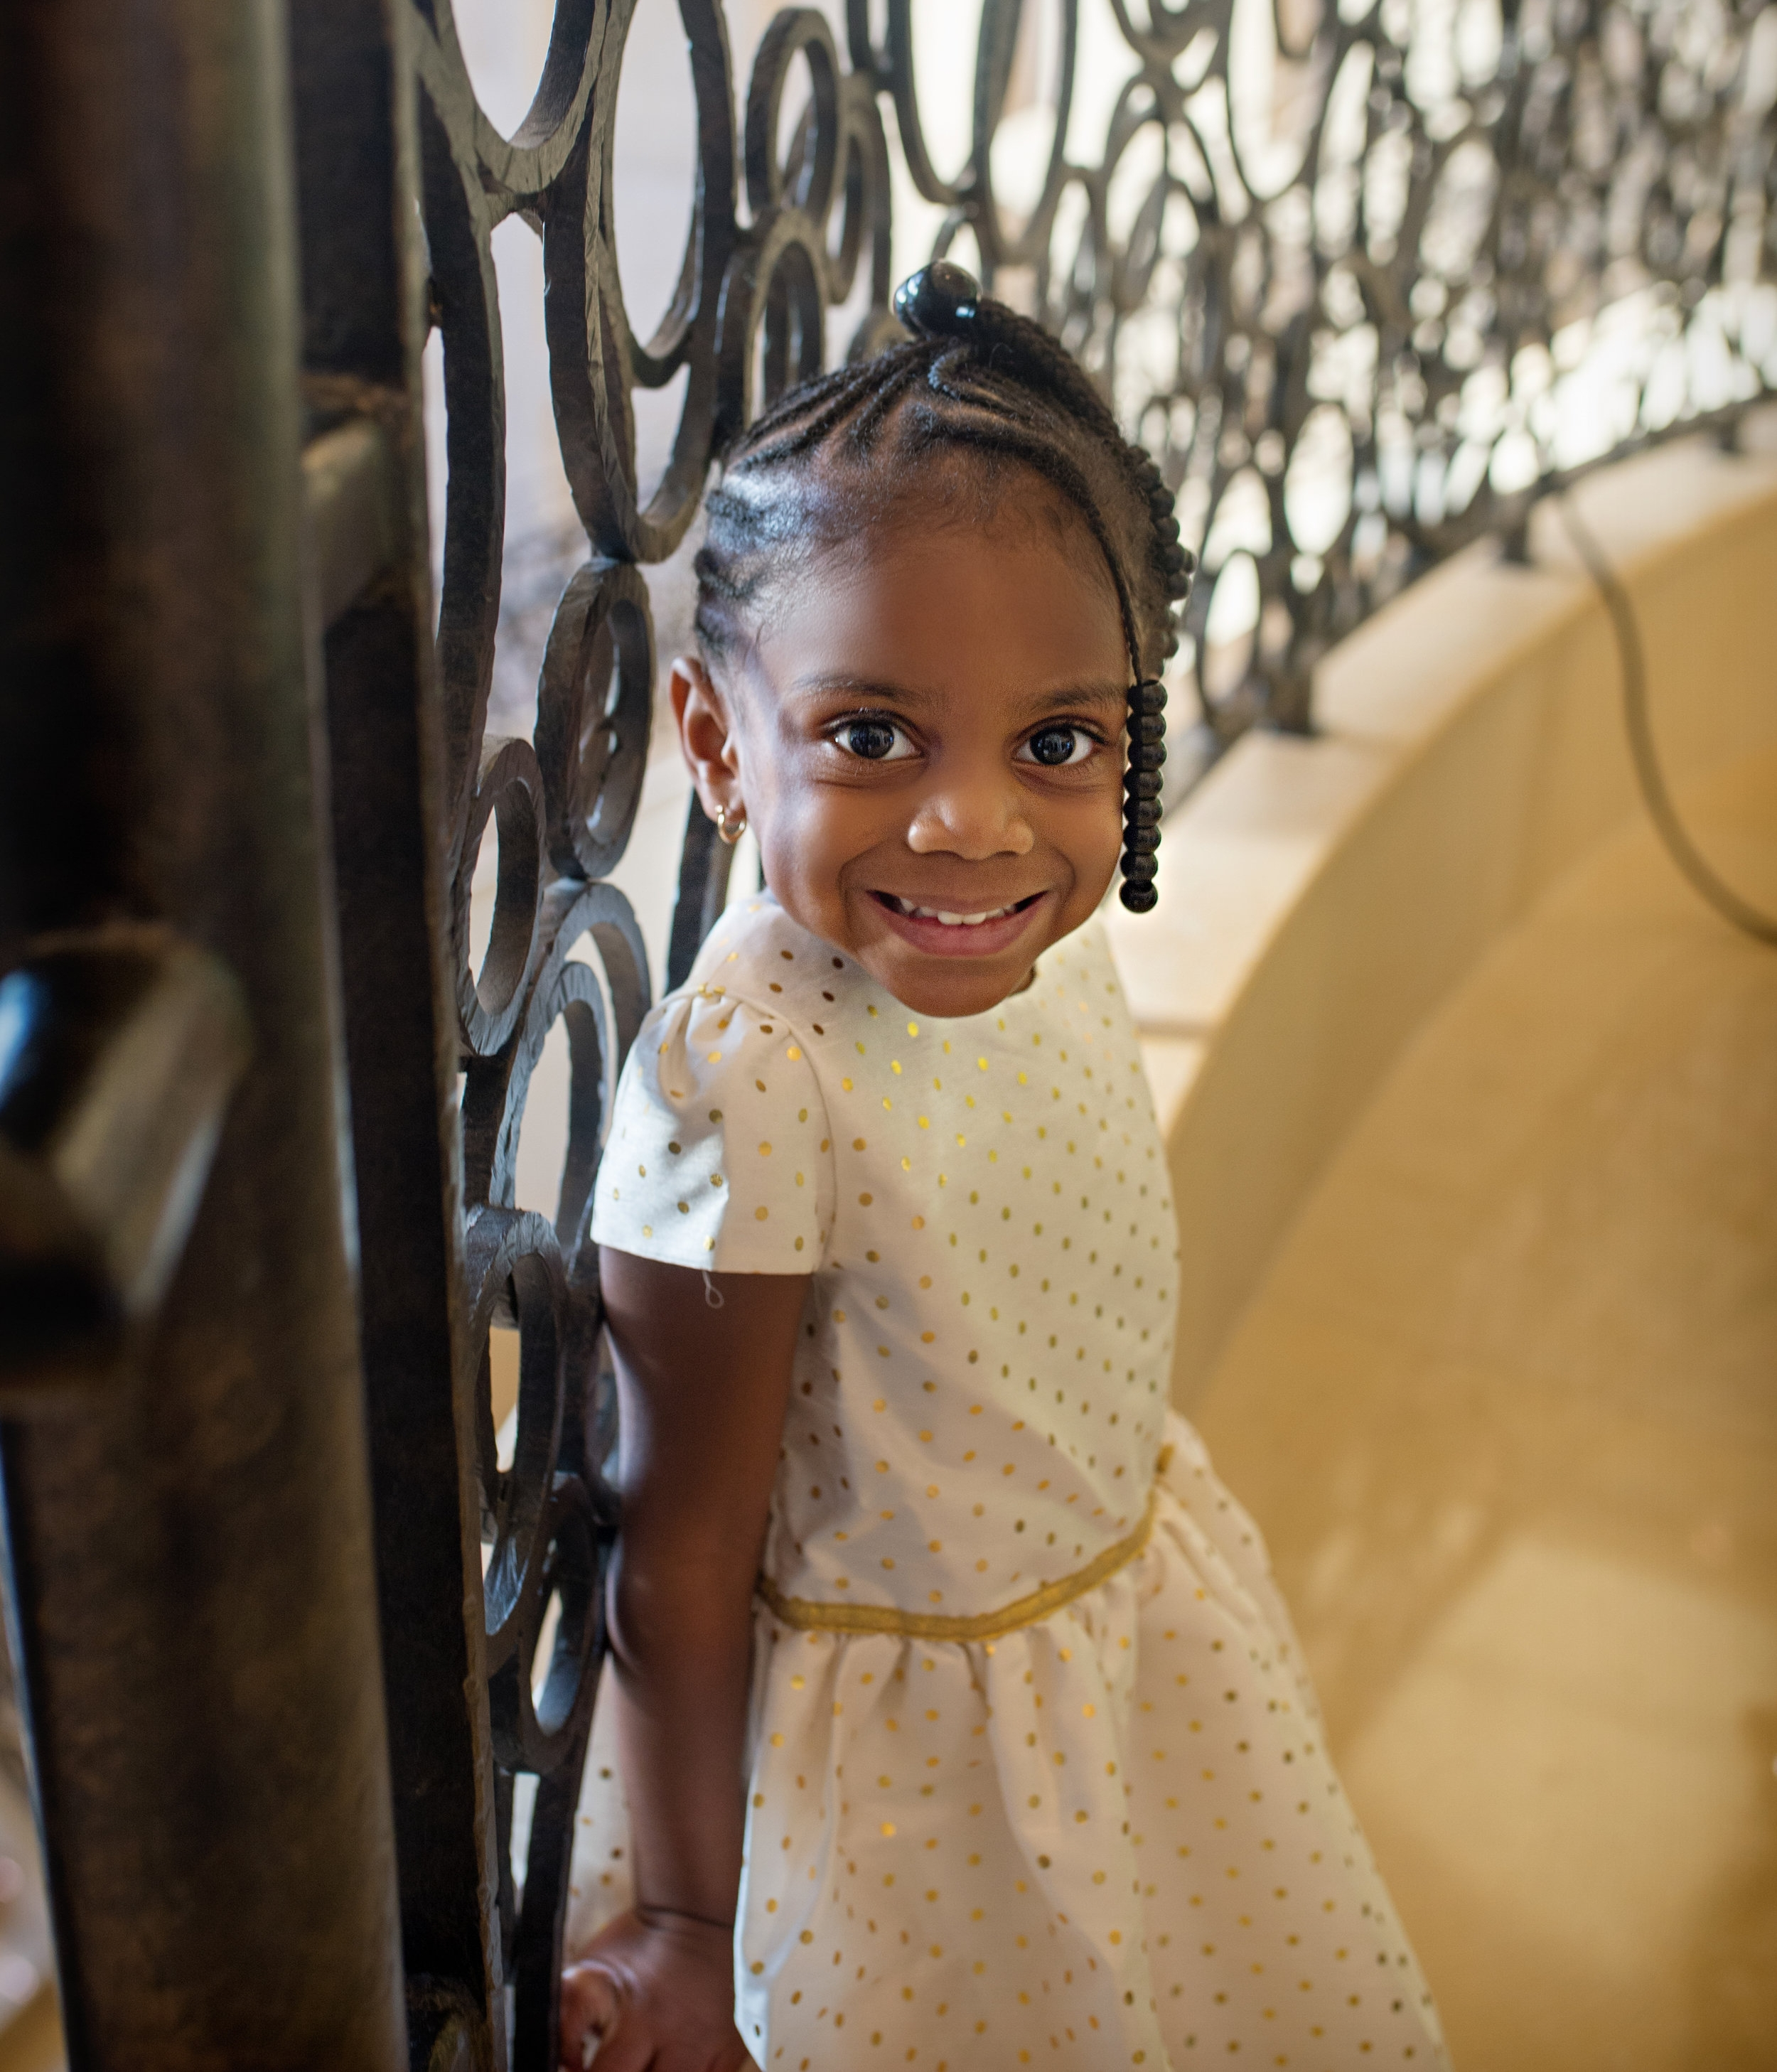 Our Mission - To educate Black children on the rich and varied history of Black America and the contributions of Black people in the Caribbean and Latin America. Black people have contributed greatly to the advancement of the arts, science, philosophy, engineering and more. To make Black history accessible, stimulating, and fun for Black children. Black peoples served as navigators, conquerors, translators, diplomats, sailors, pirates, architects, artists, musicians and scholars. Their stories inspire imagination and wonder.